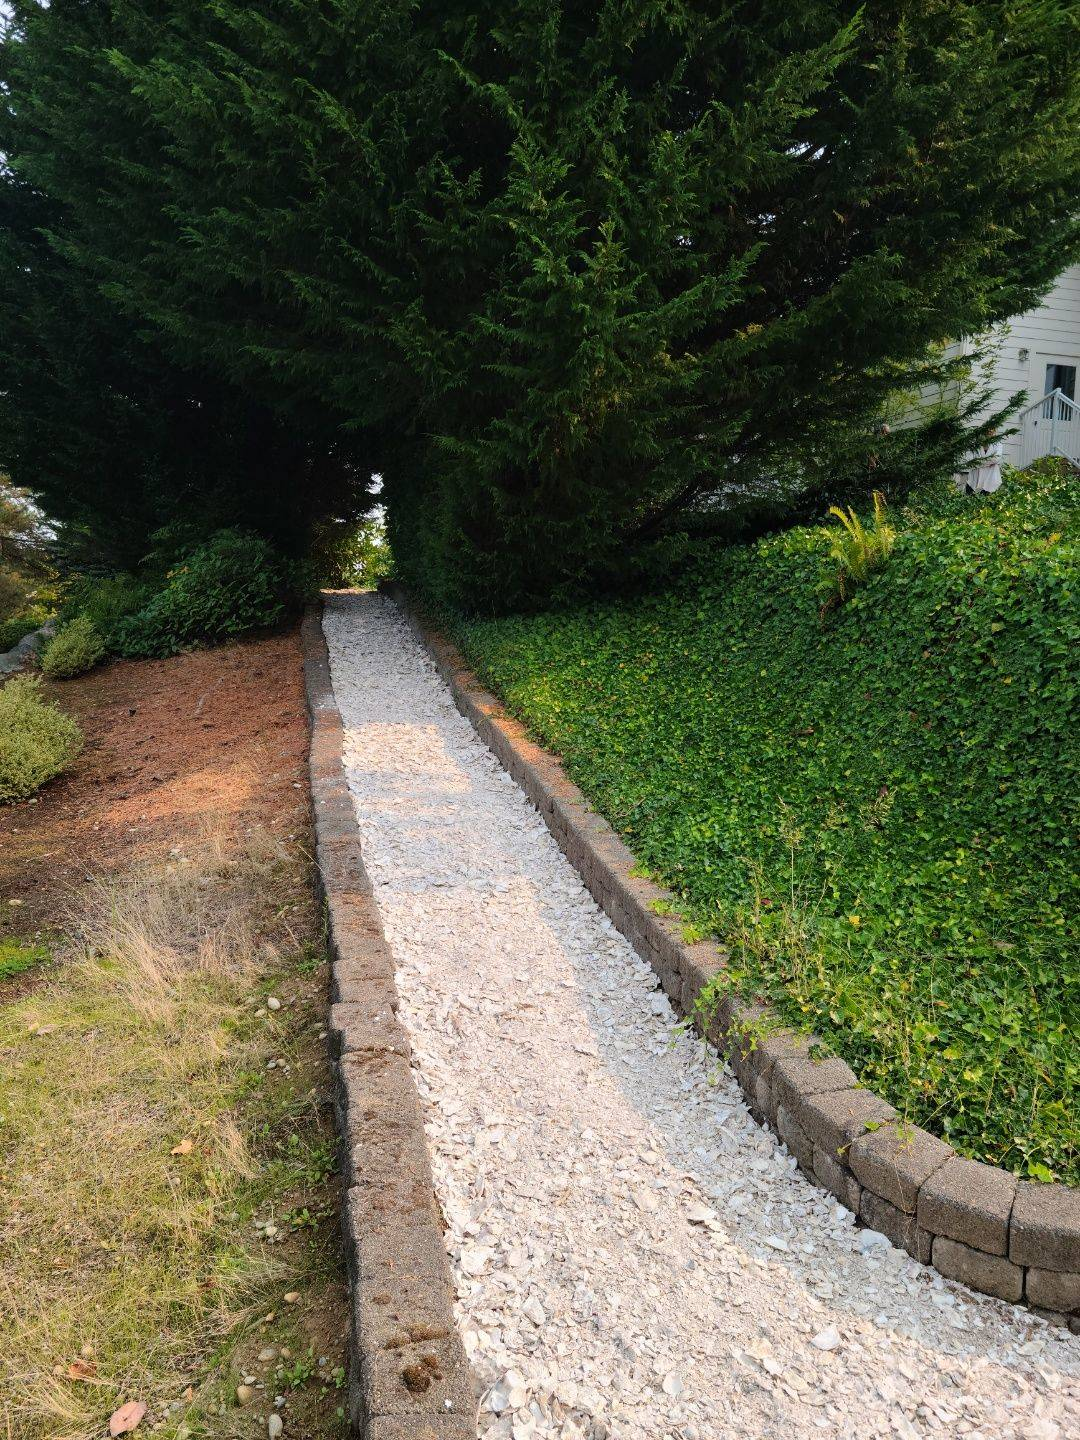 Oyster shells can be an attractive option for walking paths.